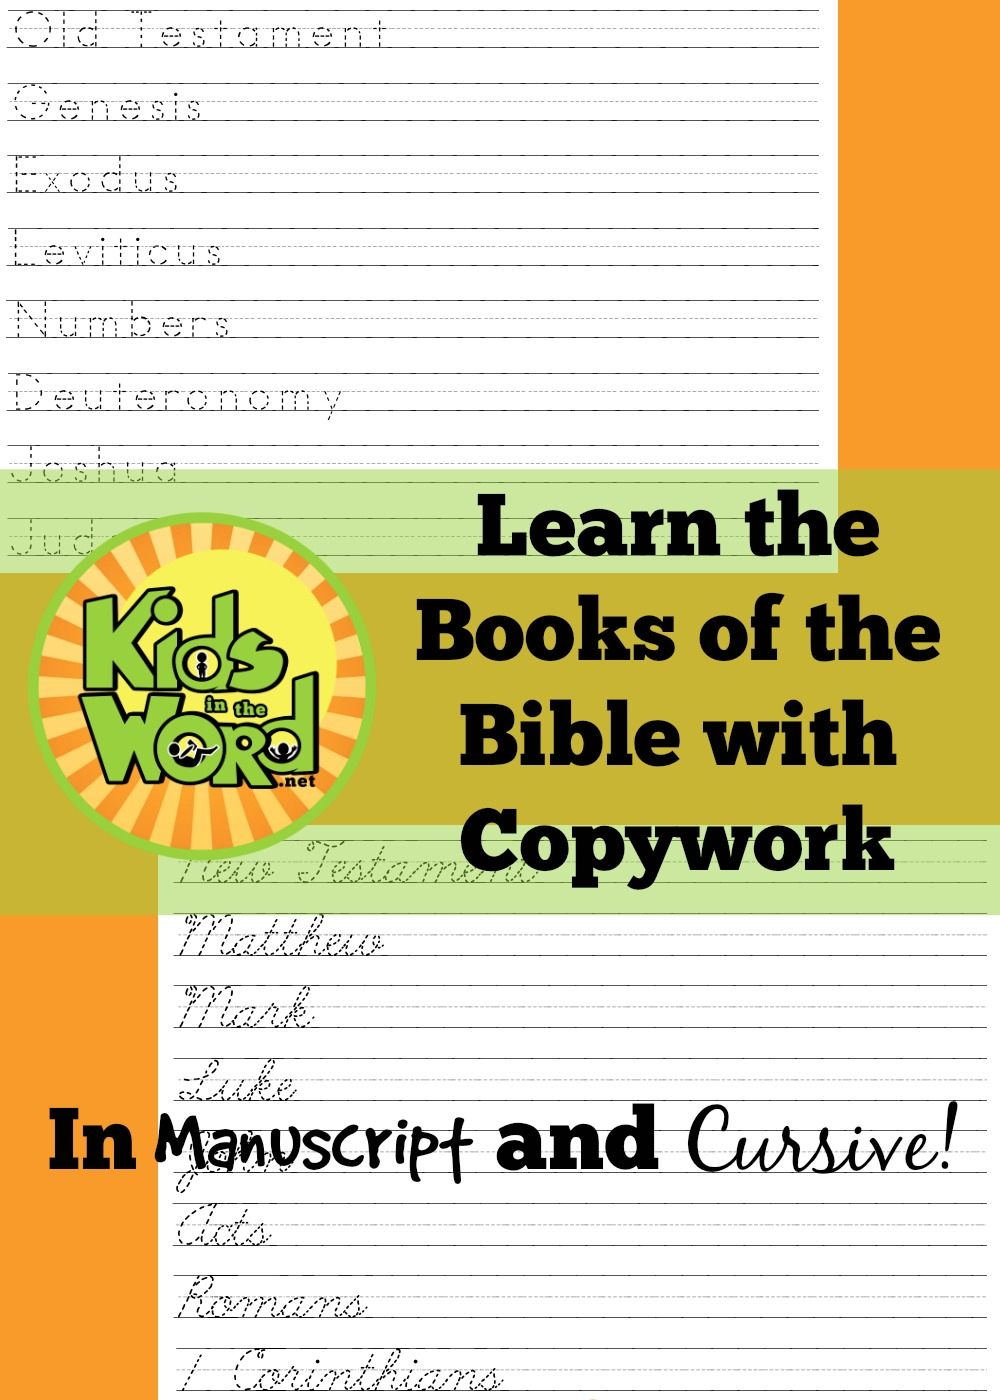 Help your kids learn the books of the Bible with tracing and copywork. Writing helps memory! At KidsintheWord.net